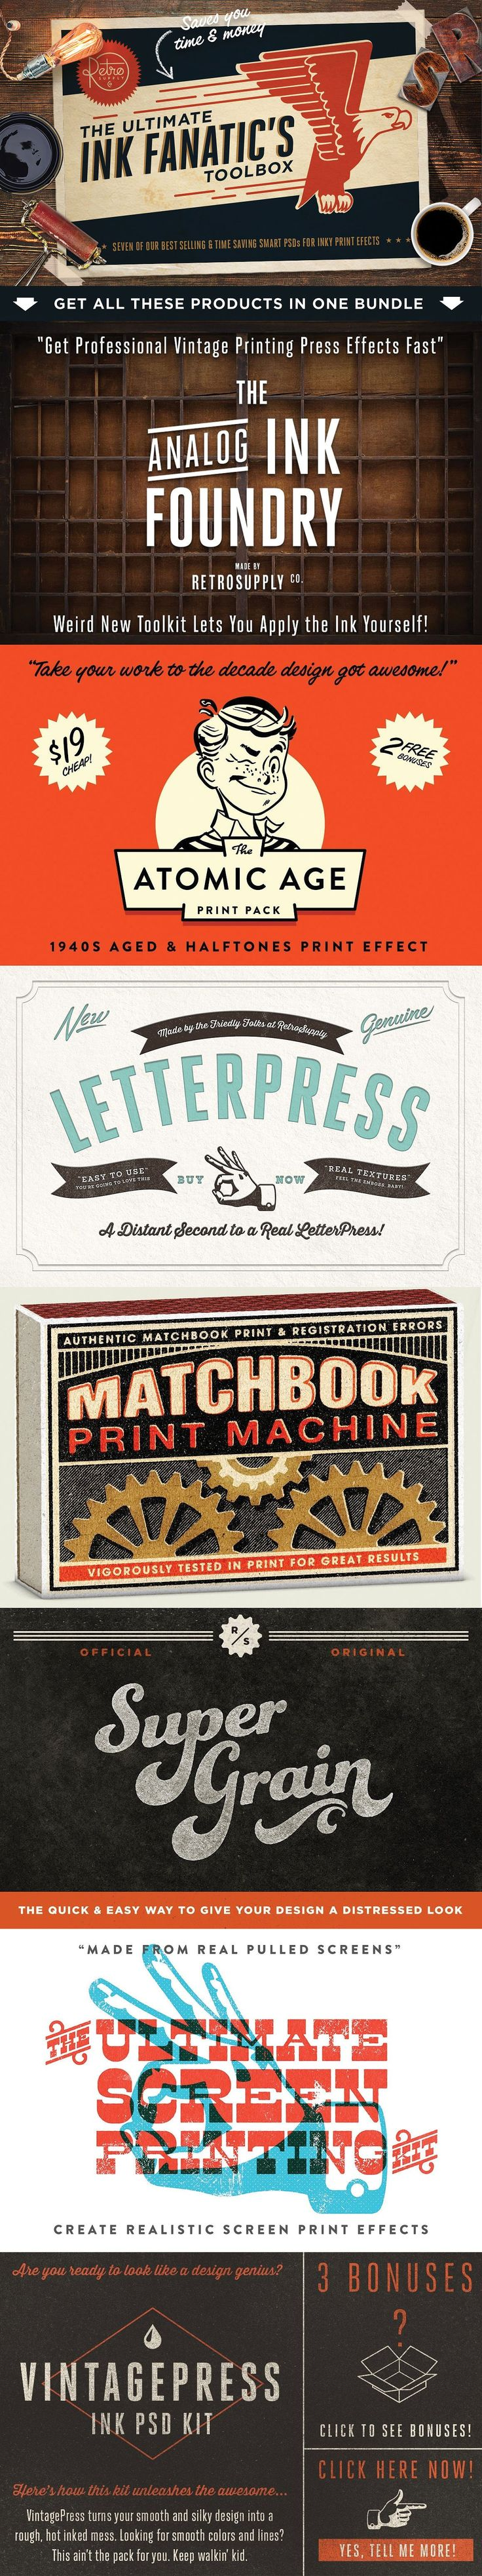 The Ink Fanatic's Toolbox | PSD Kit | Vintagepress | Letterpress | Printing Effects